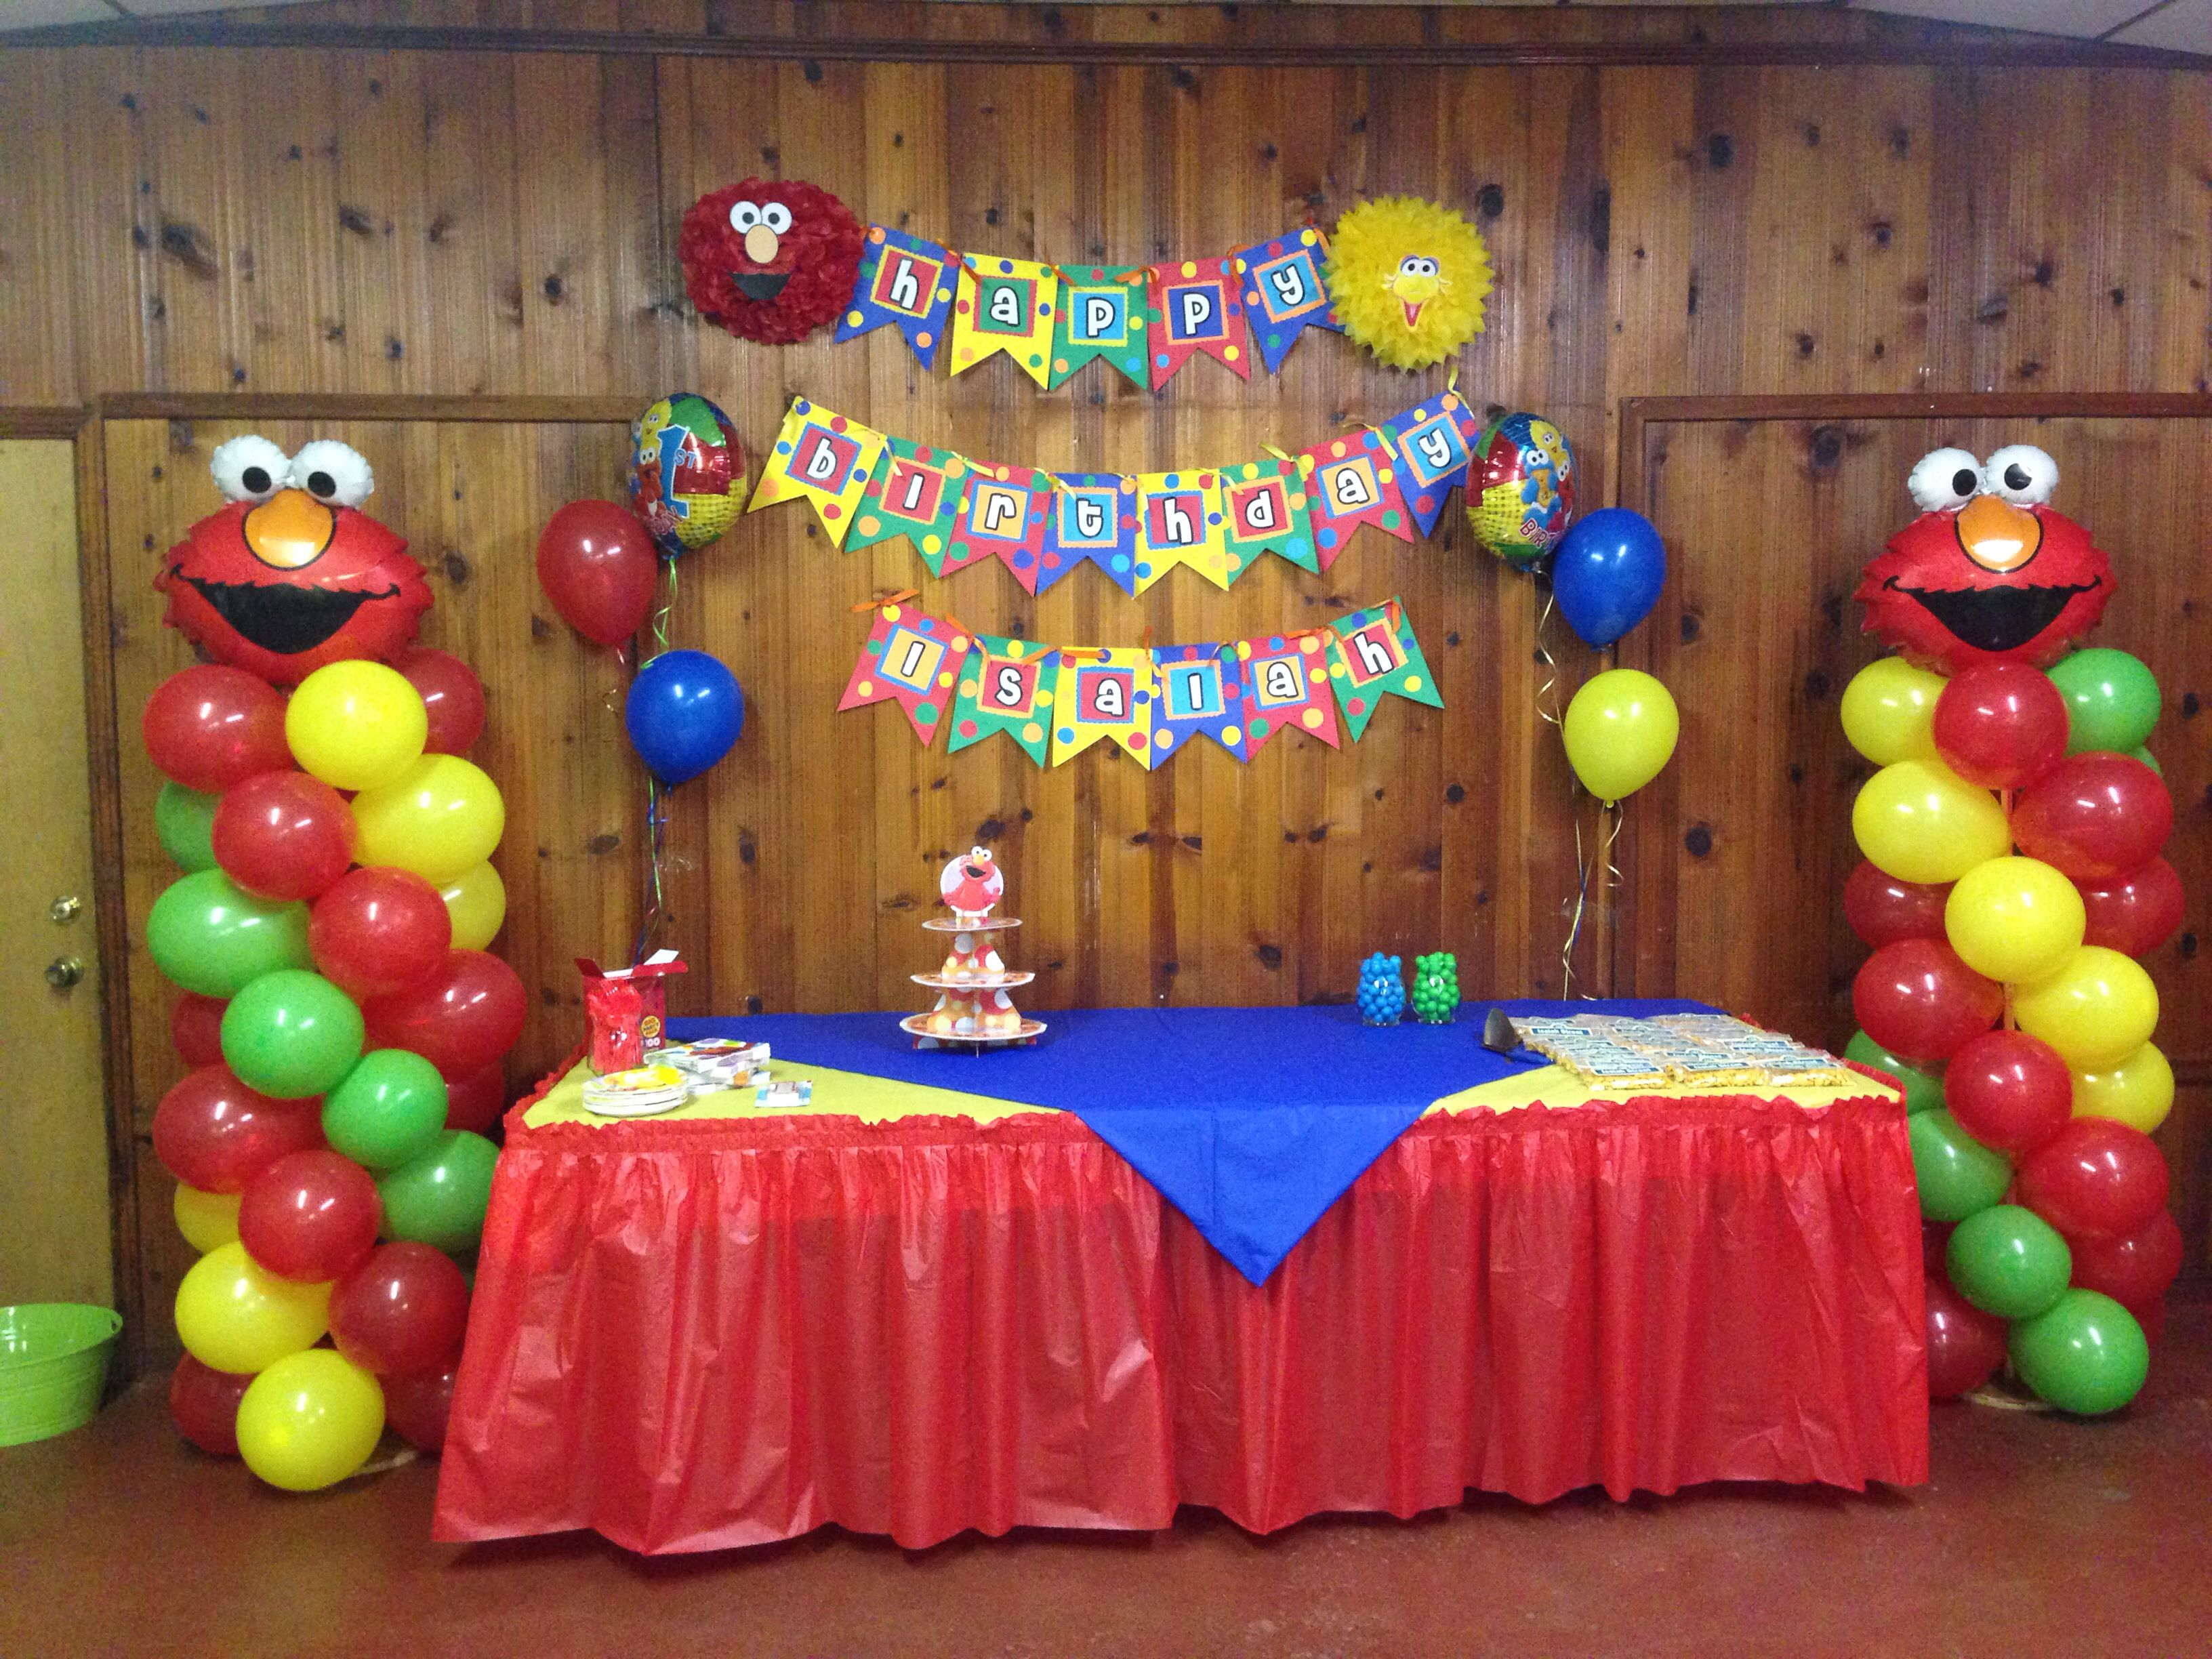 Elmo 1st birthday party ideas birthday party sesamestreet - Sesame Street Balloon Columns Elmo Birthdaymickey Mouse Birthdaybirthday Party Ideasballoon